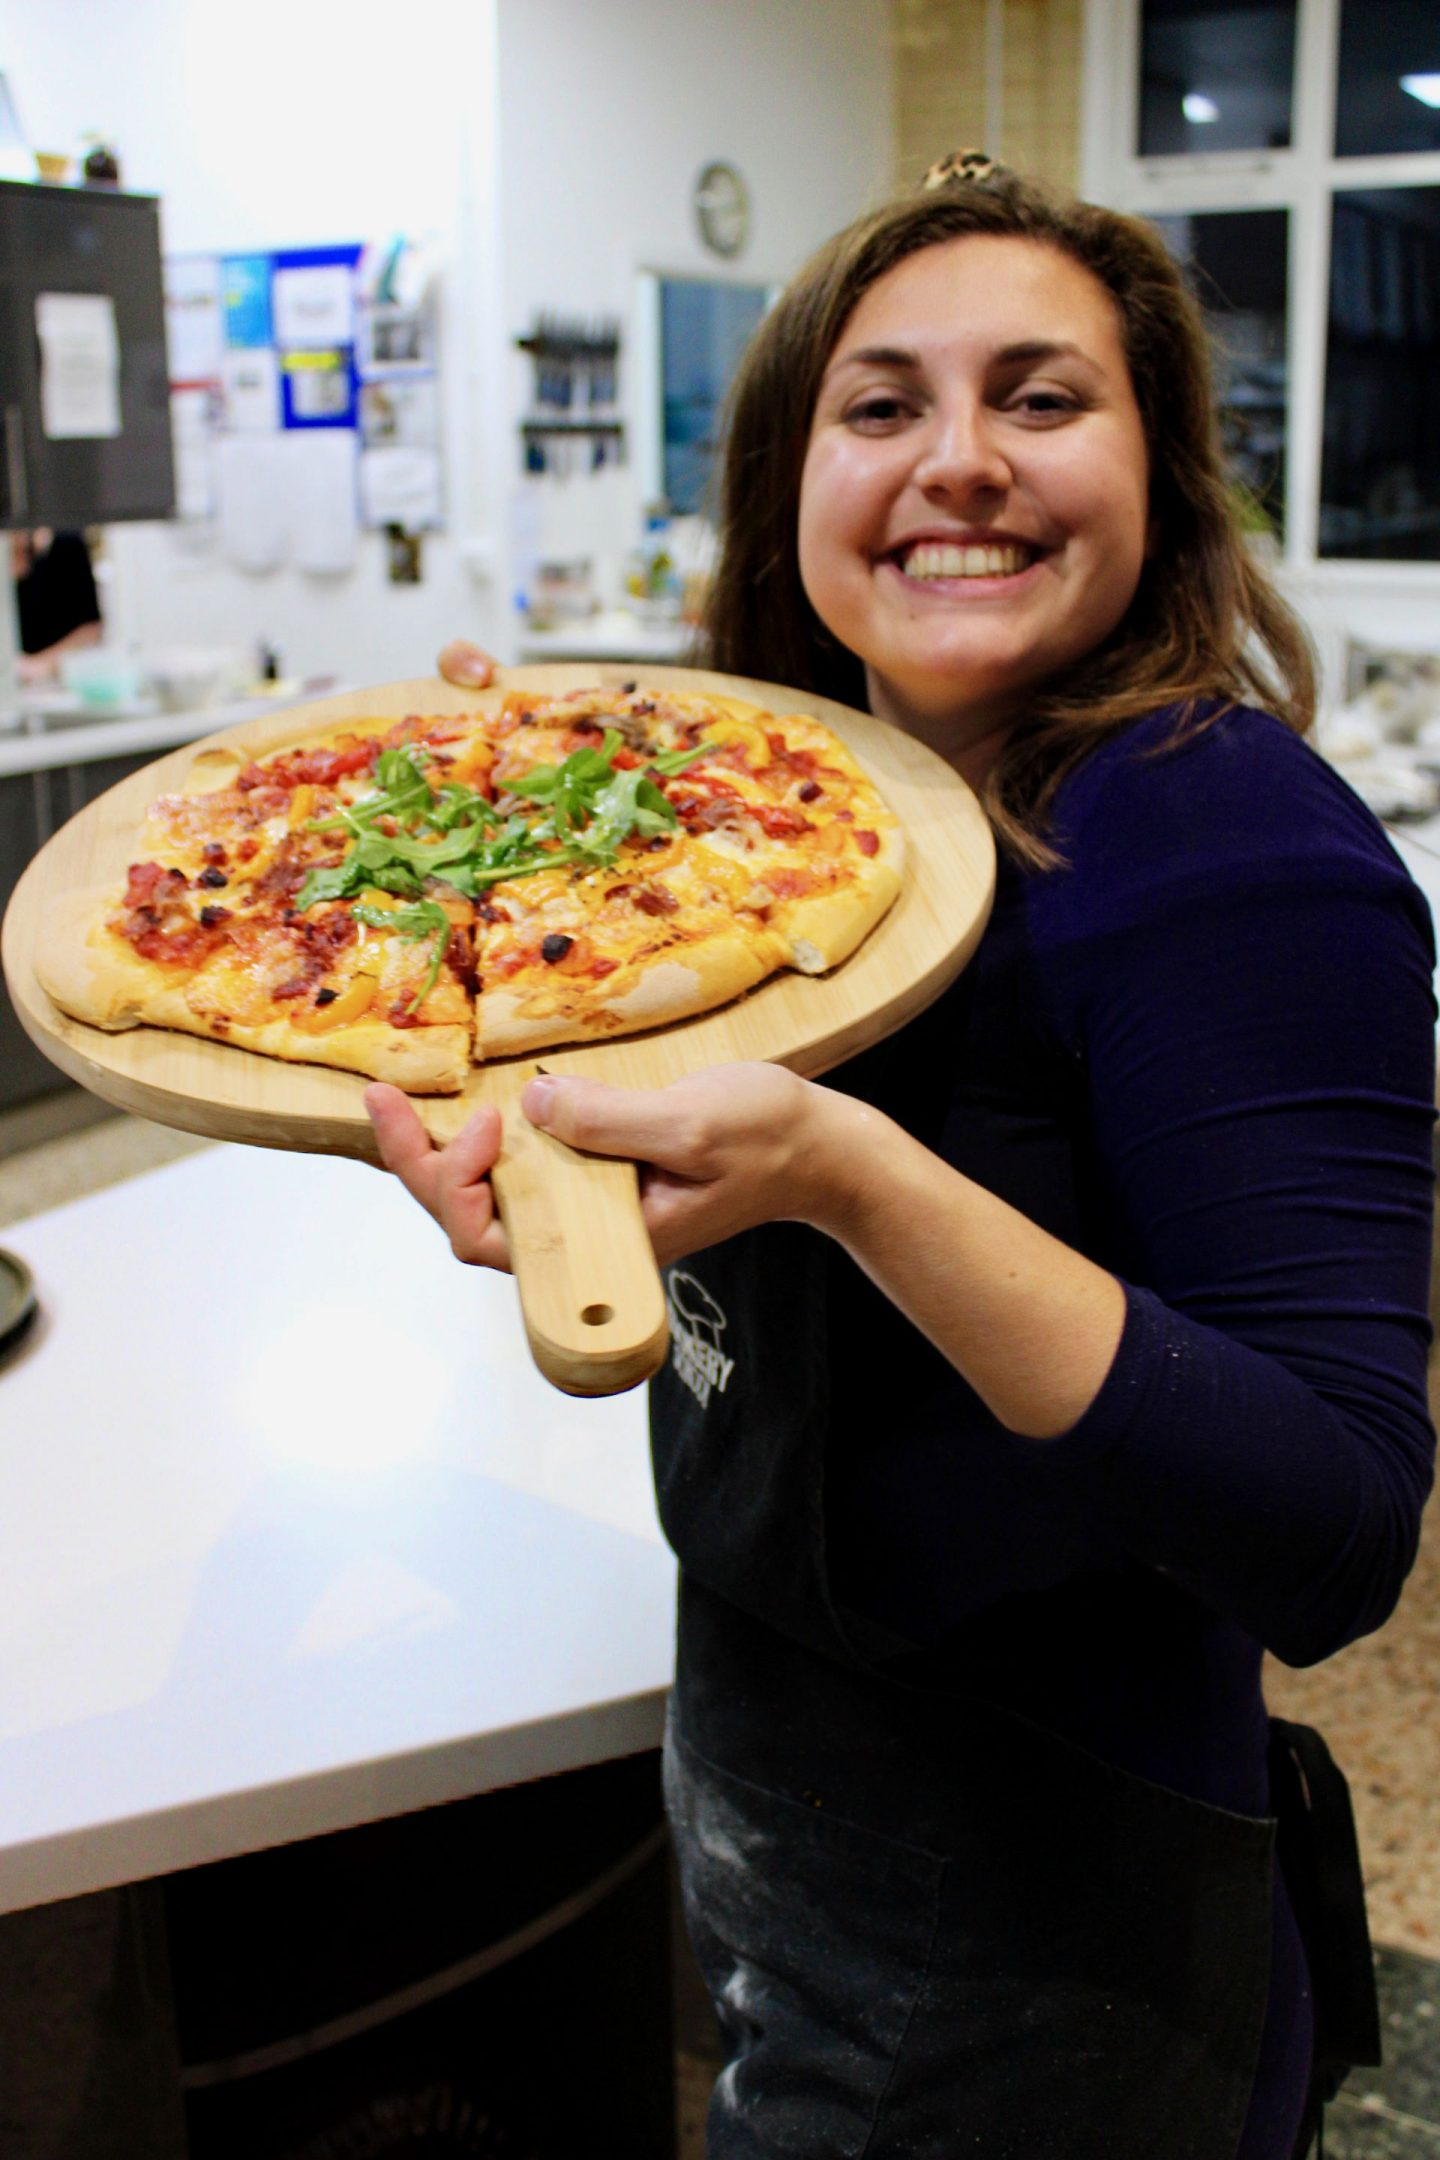 Girl in blue dress holding up the pizza she made at Leeds Cookery School and smiling